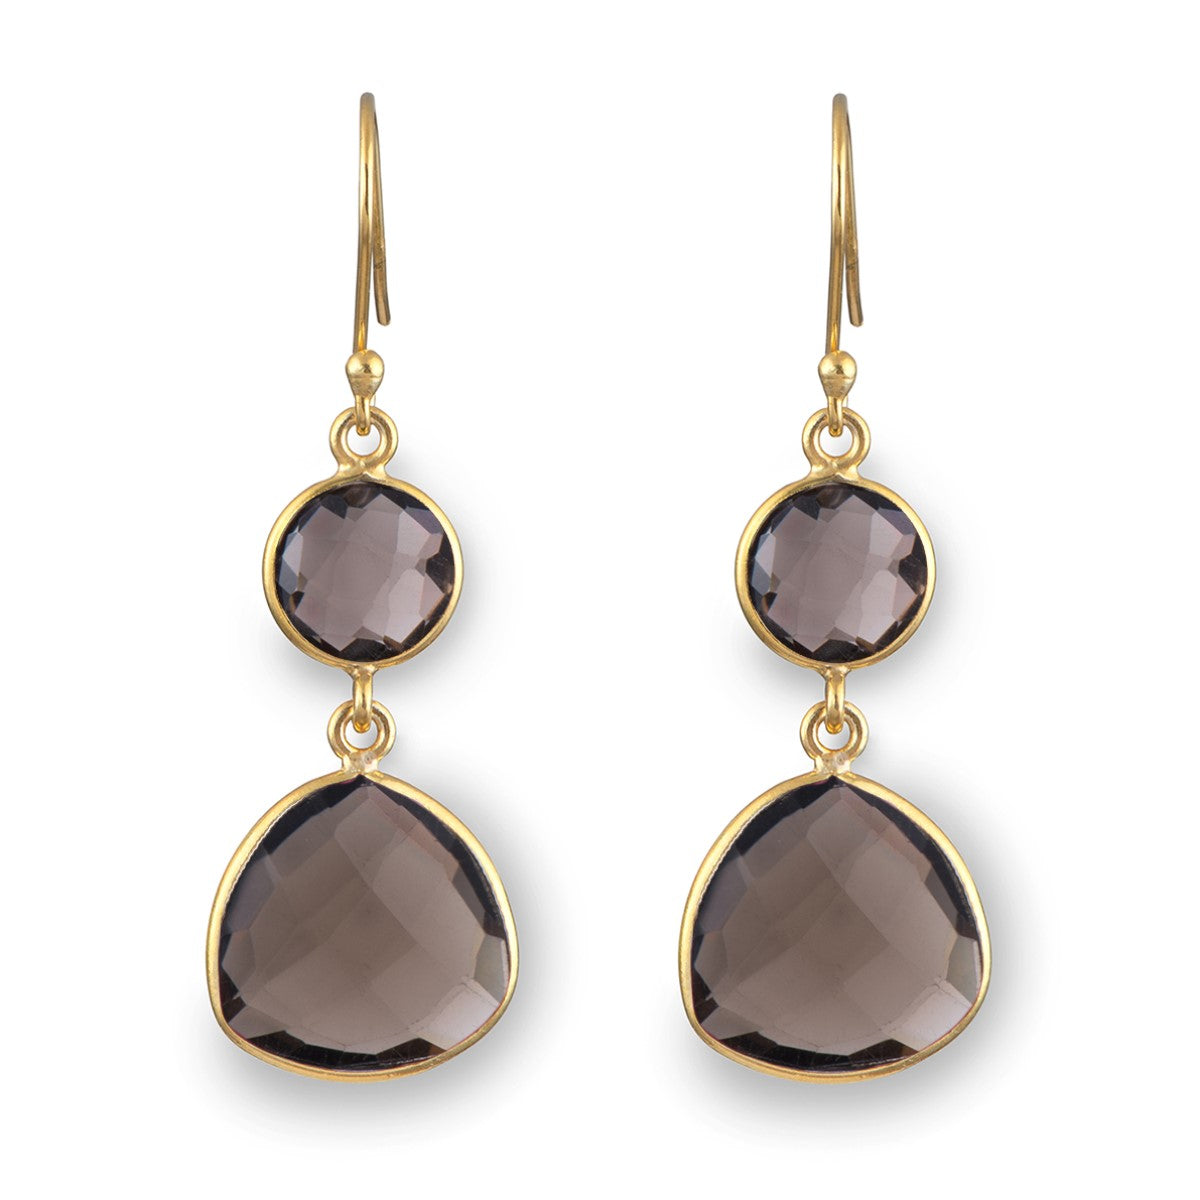 Smoky Quartz Gemstone Earrings in Gold Plated Sterling Silver - Triangular